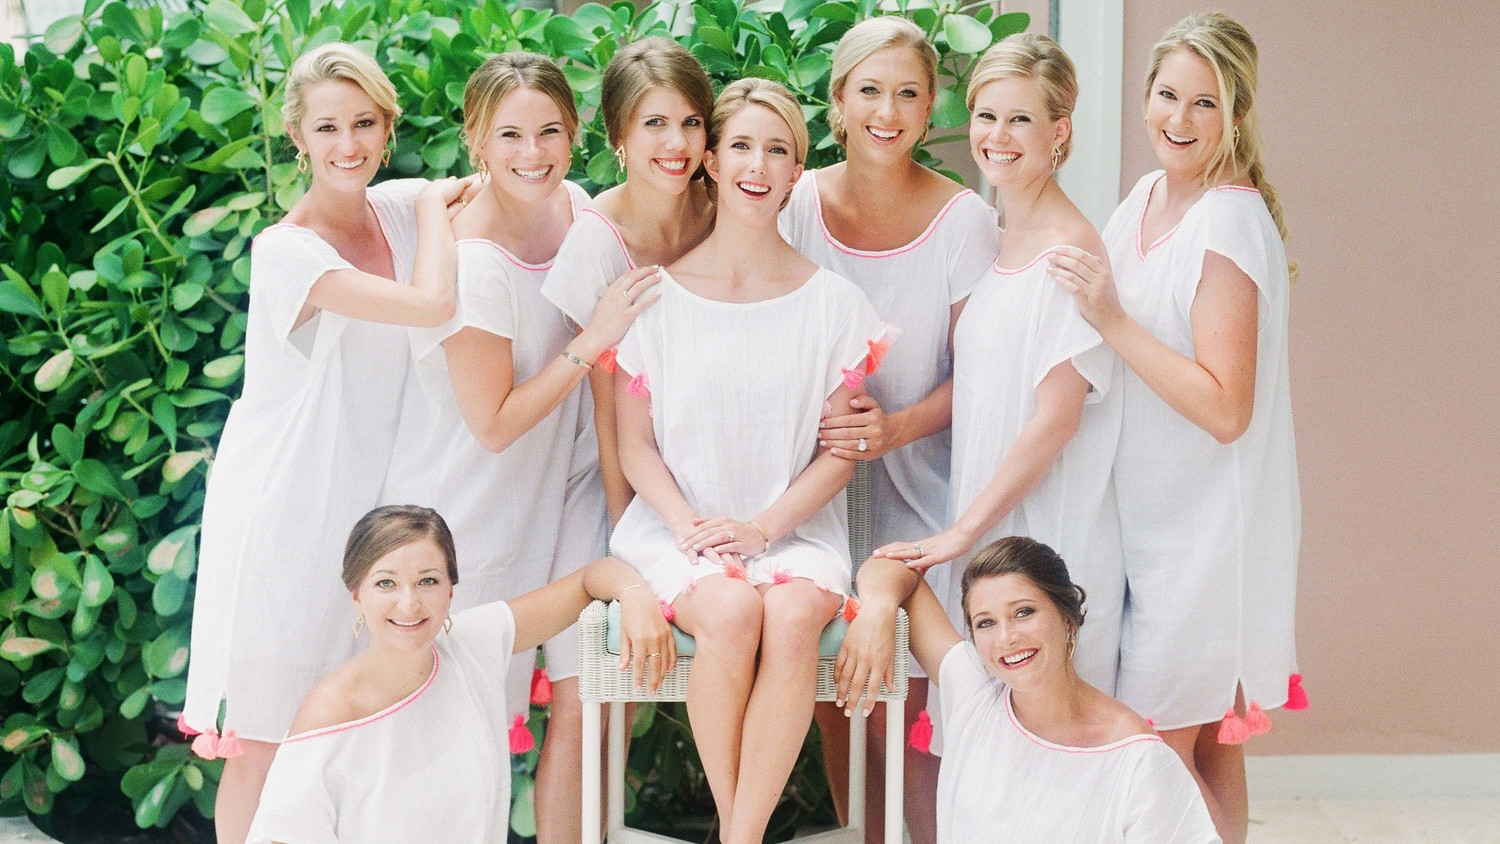 Bridesmaids Robes Alternatives To Set You And Your Maids